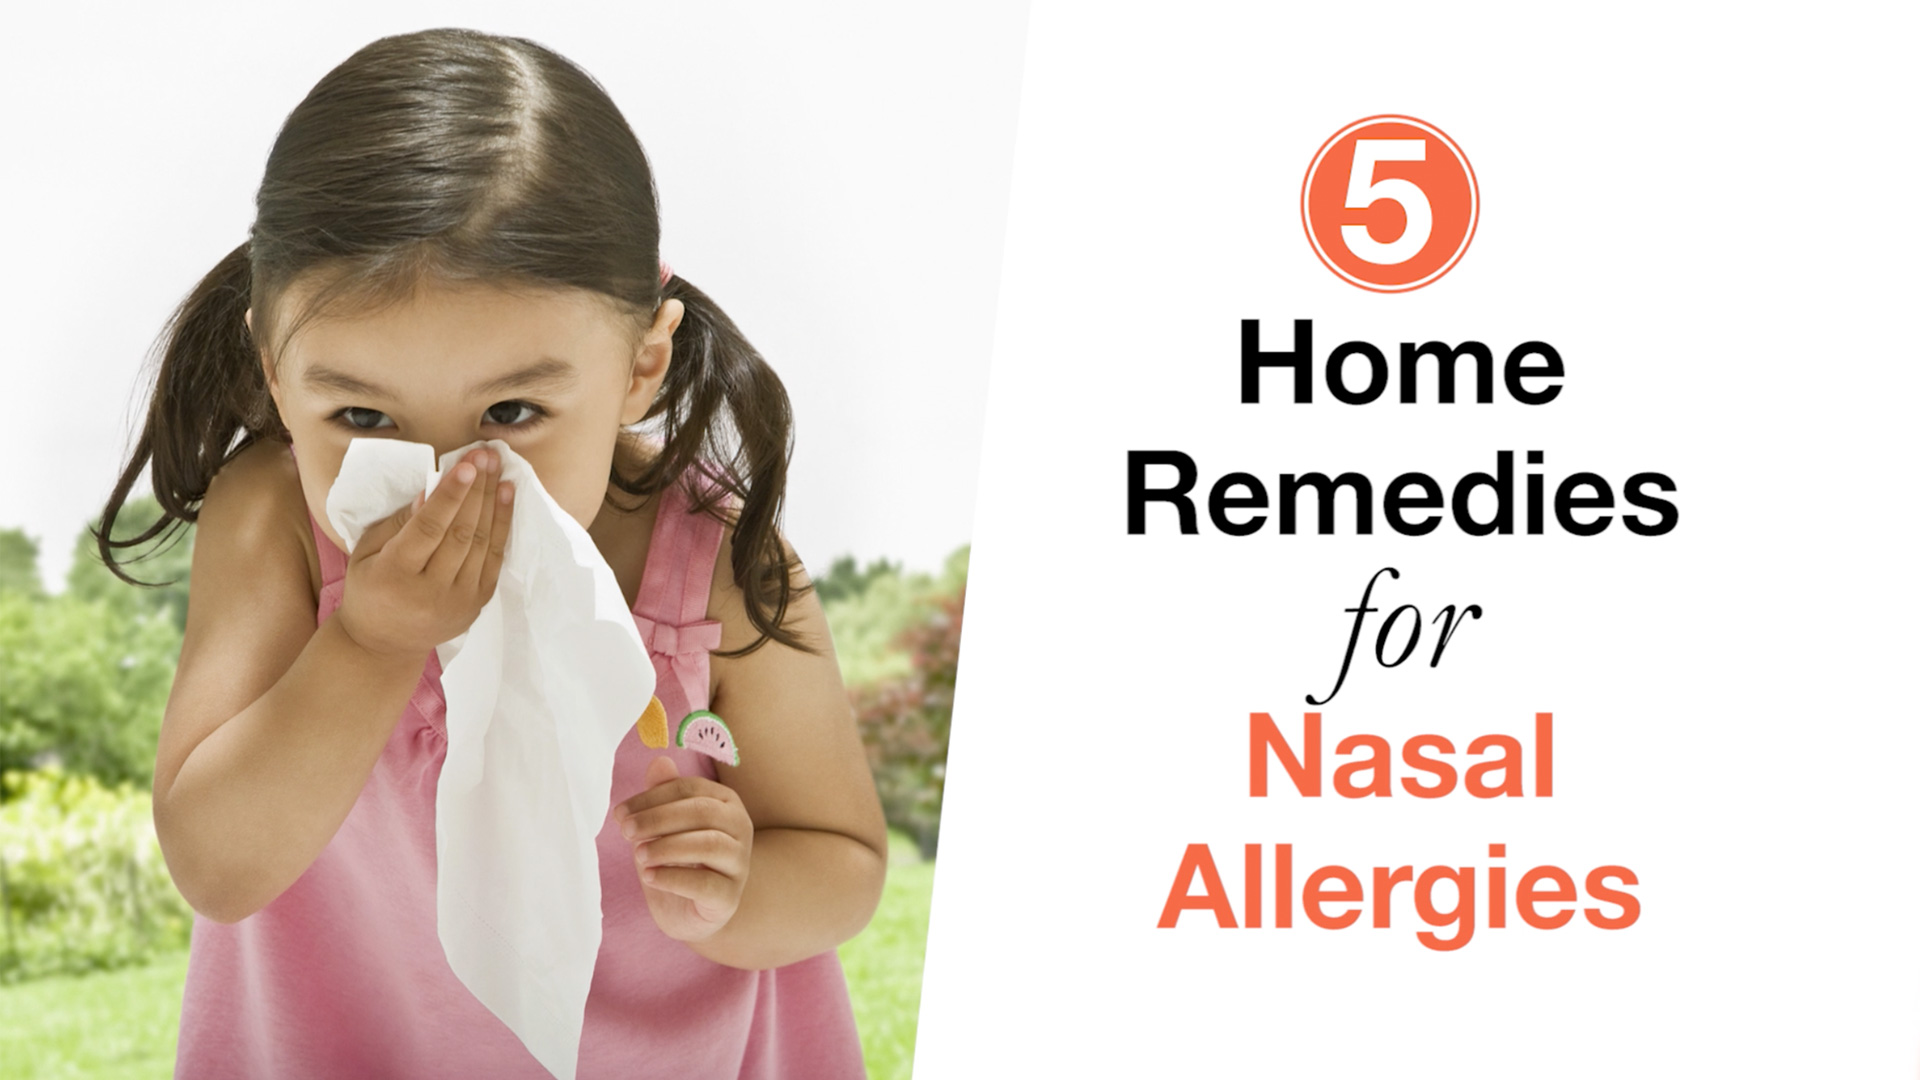 8 Home Remedies for Nasal Allergies